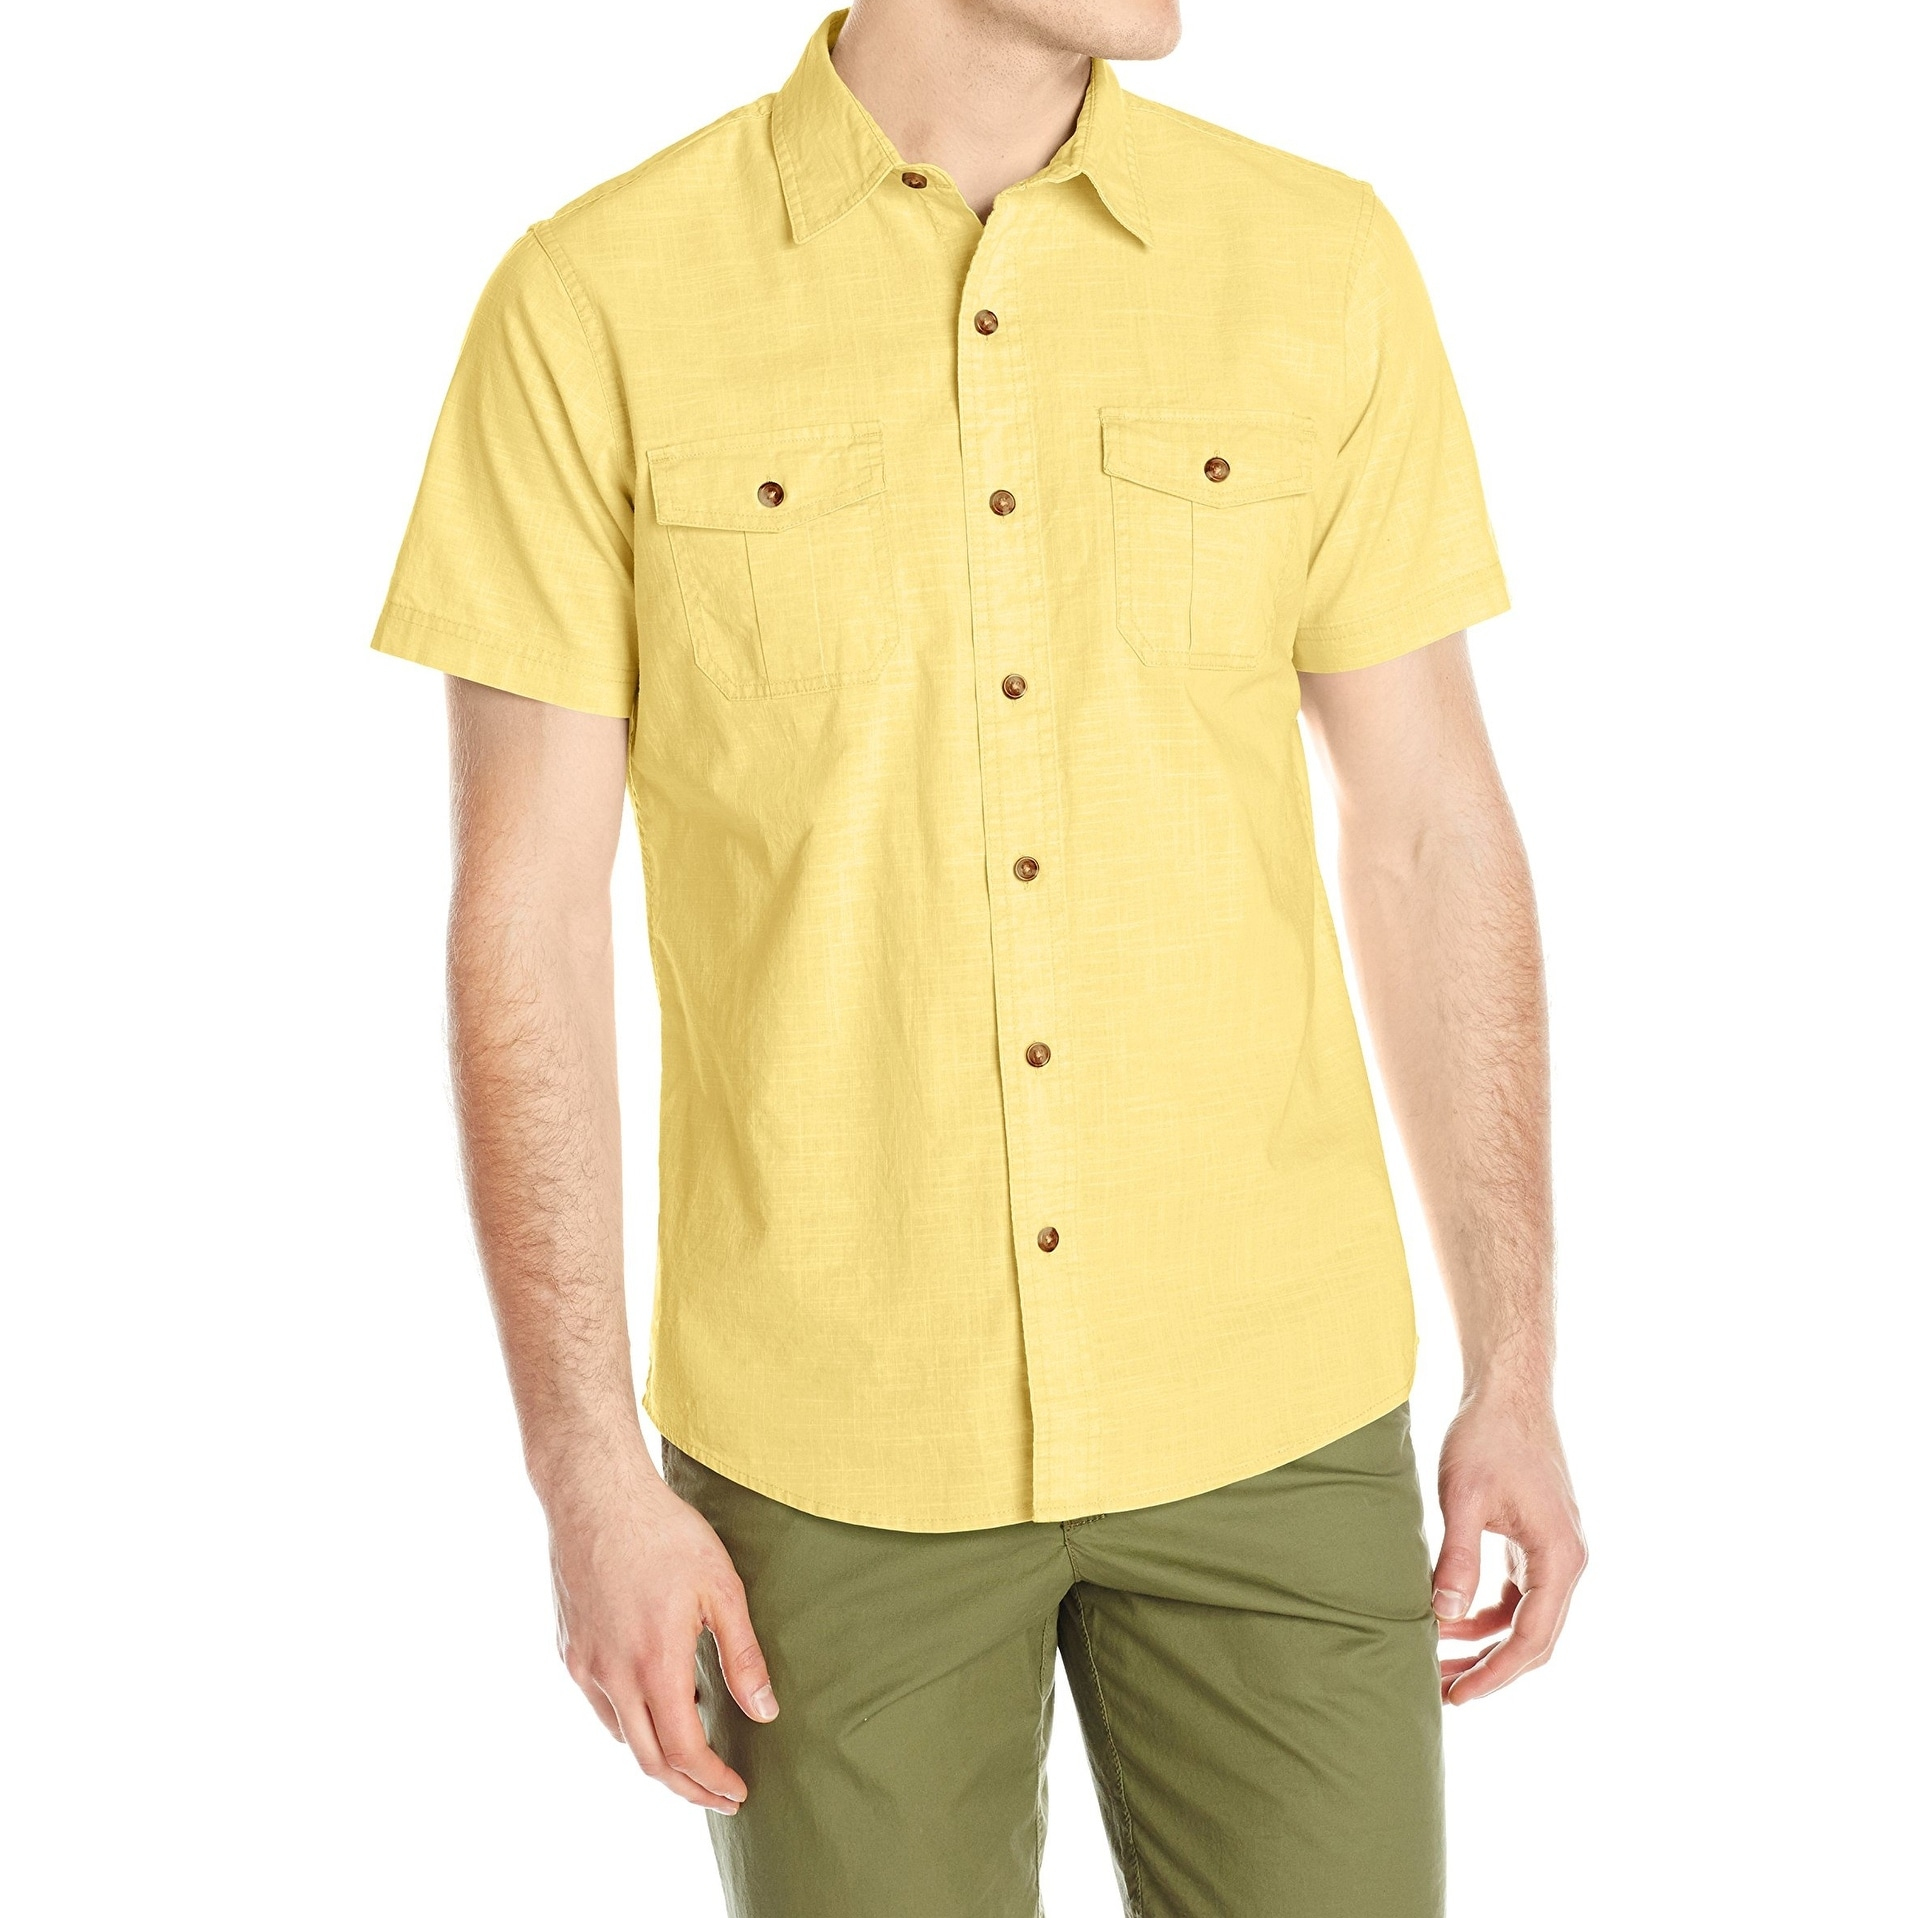 d2a43330a0bc Mens Yellow Button Down Dress Shirt - Cotswold Hire